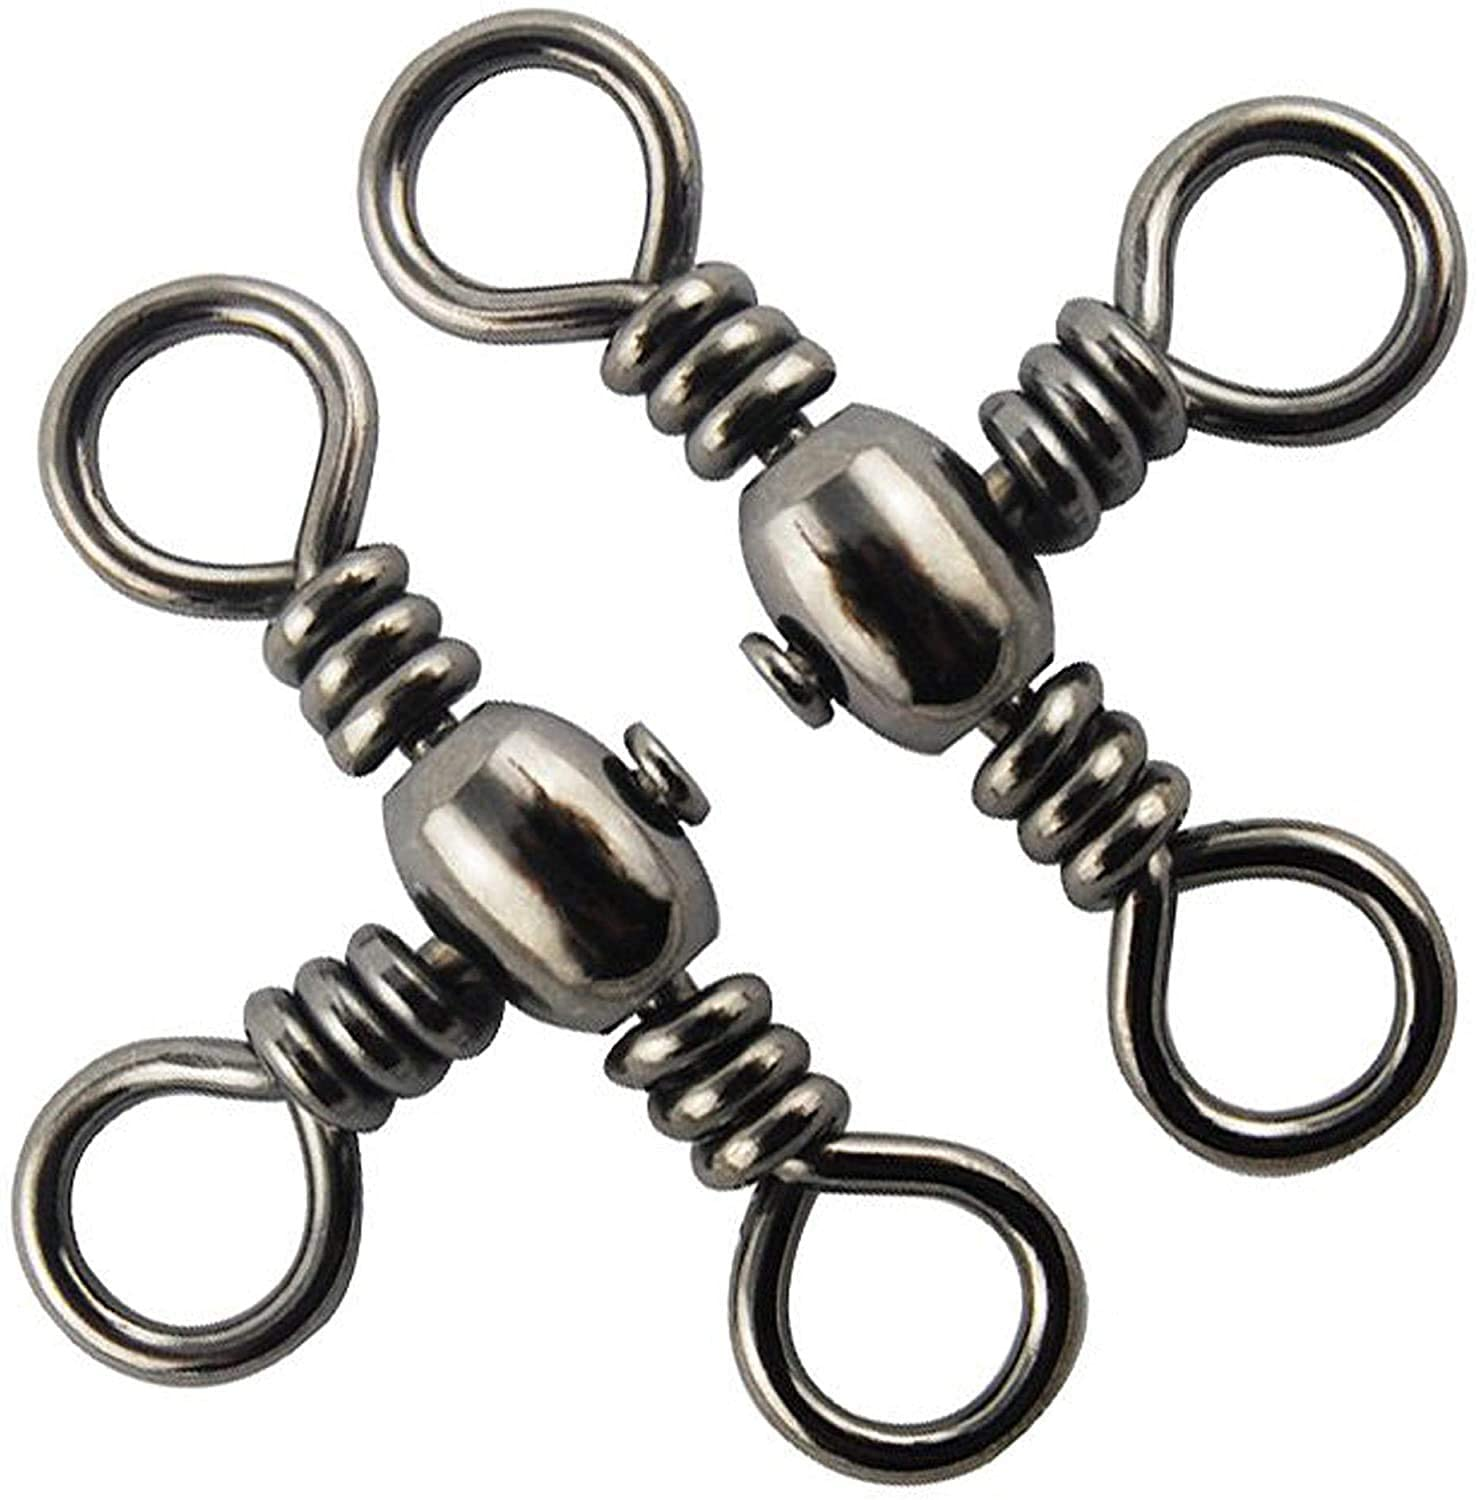 Jumping fish 30/50pcs Three 3 Way Barrel Fishing Swivels Cross Line T Turn Crossline Fishing Connector Fast Copper with Stainless Steel Tackle Accessories Size: #2-#10